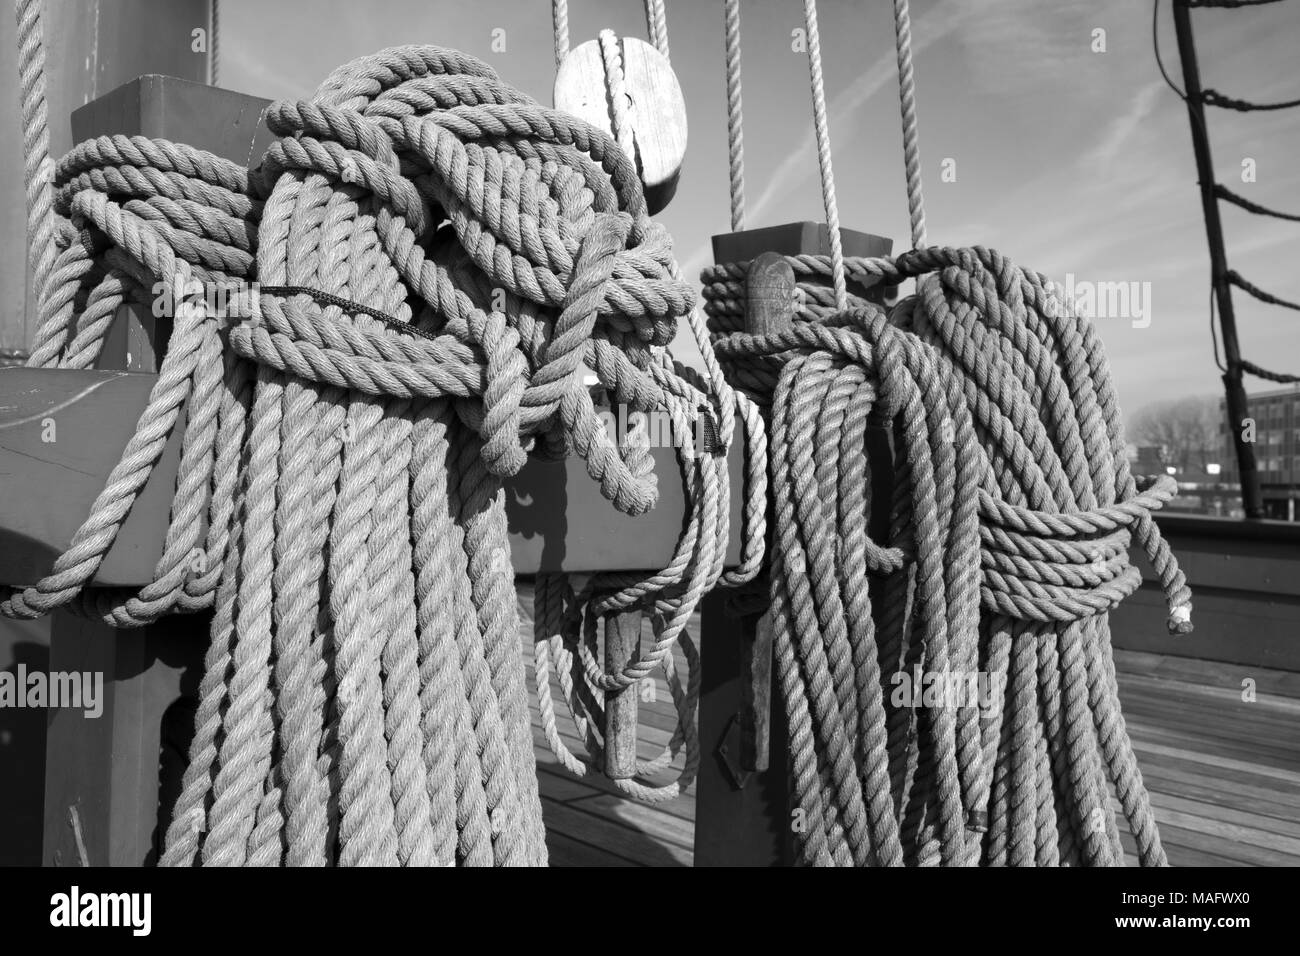 Ropes, pulley, shroud - parts of an old ship, sailboat. Black and white photo, high resolution. - Stock Image